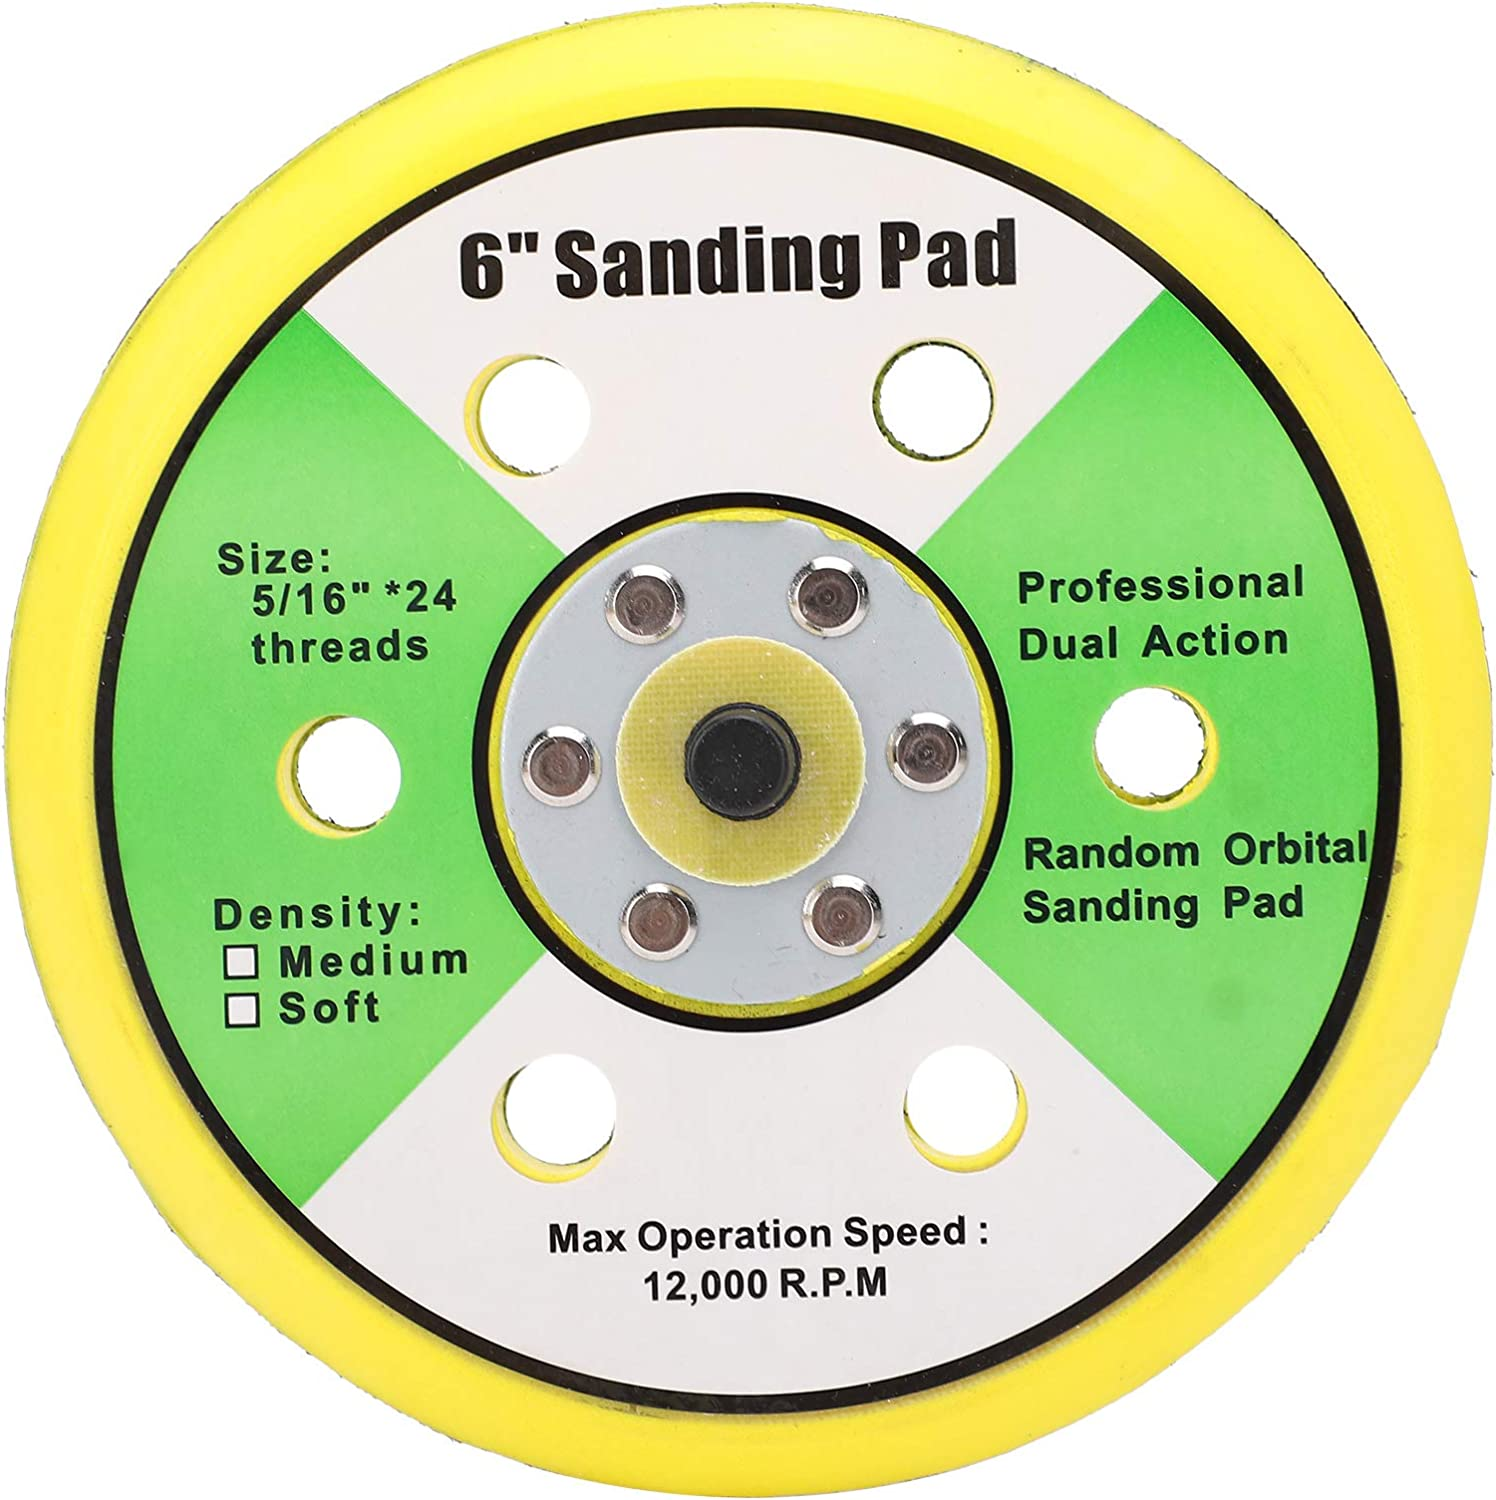 Tgoon Good Foam Buffering Outlet sale feature Pad Removal Rate Pads with Superior A Popular brand